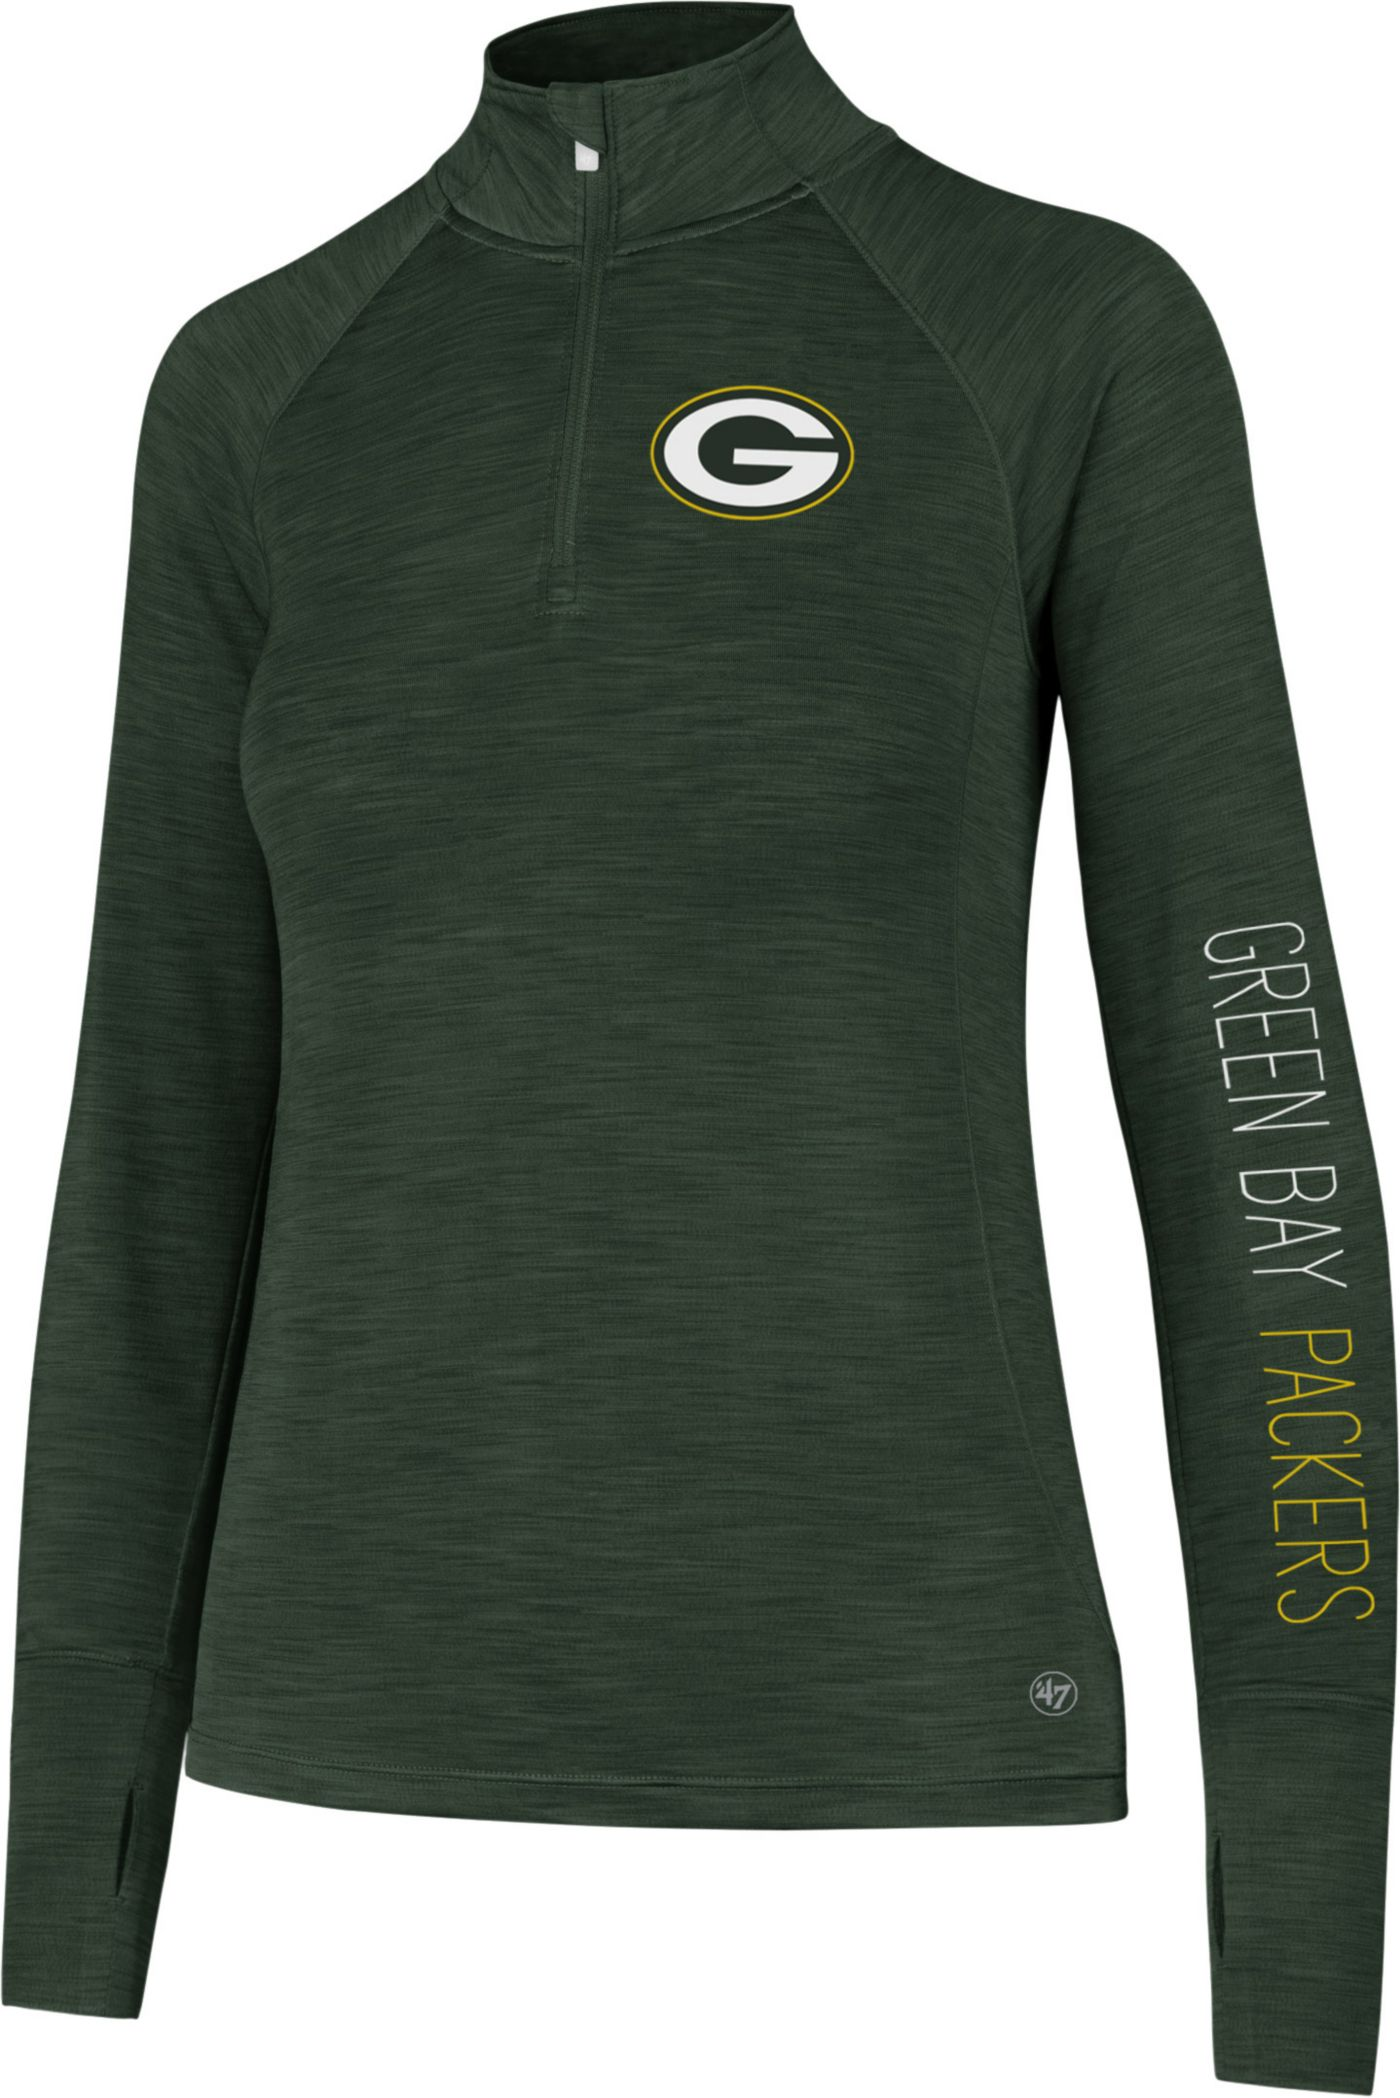 '47 Women's Green Bay Packers Shade Green Quarter-Zip Pullover